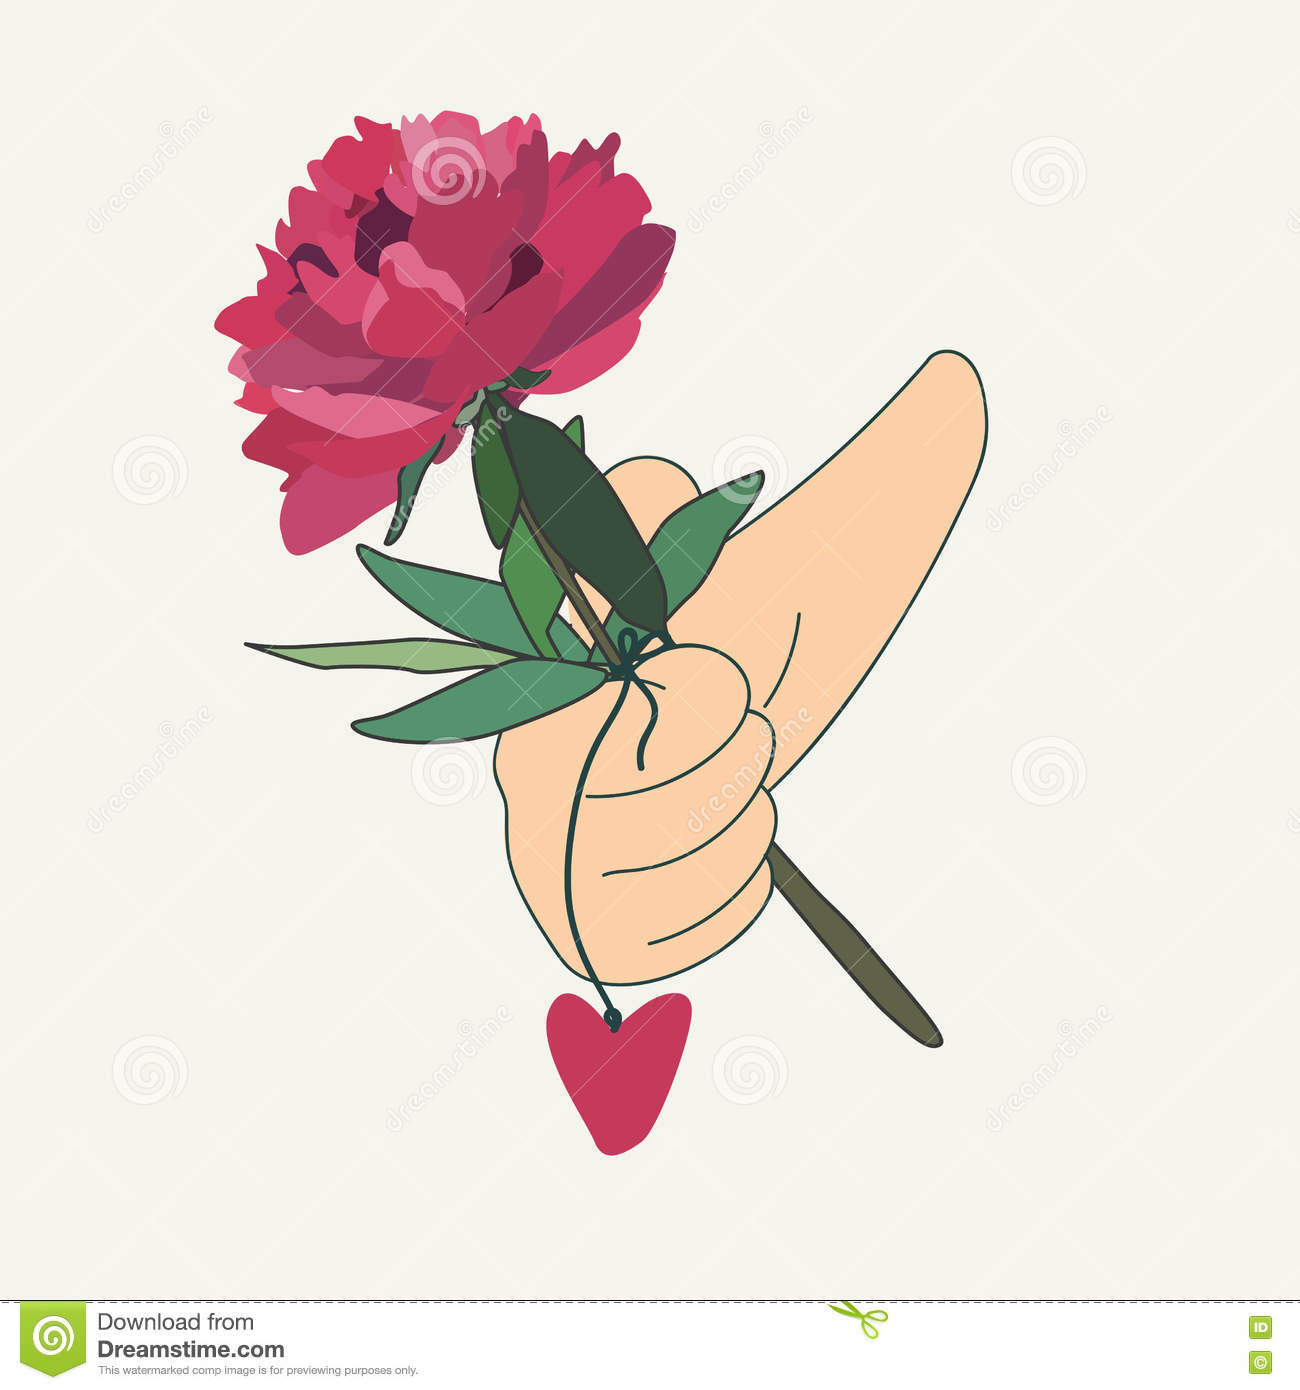 how to draw a hand holding a flower